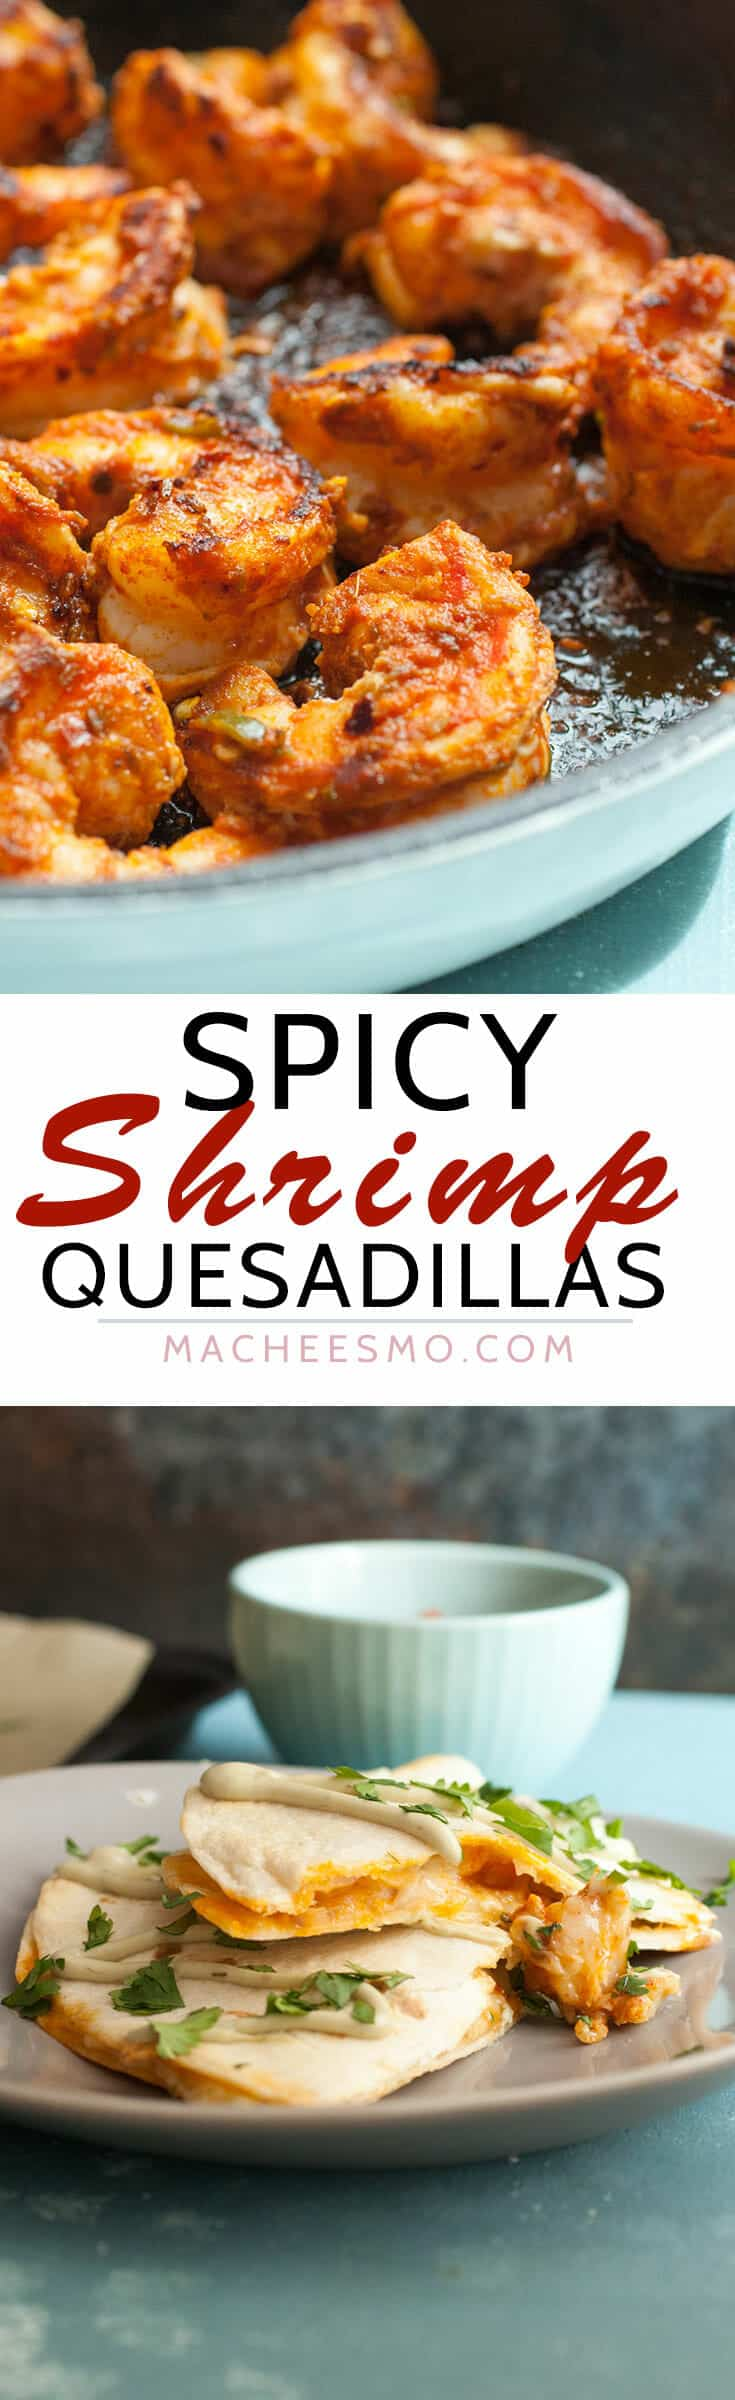 Spicy Shrimp Quesadilla Recipe